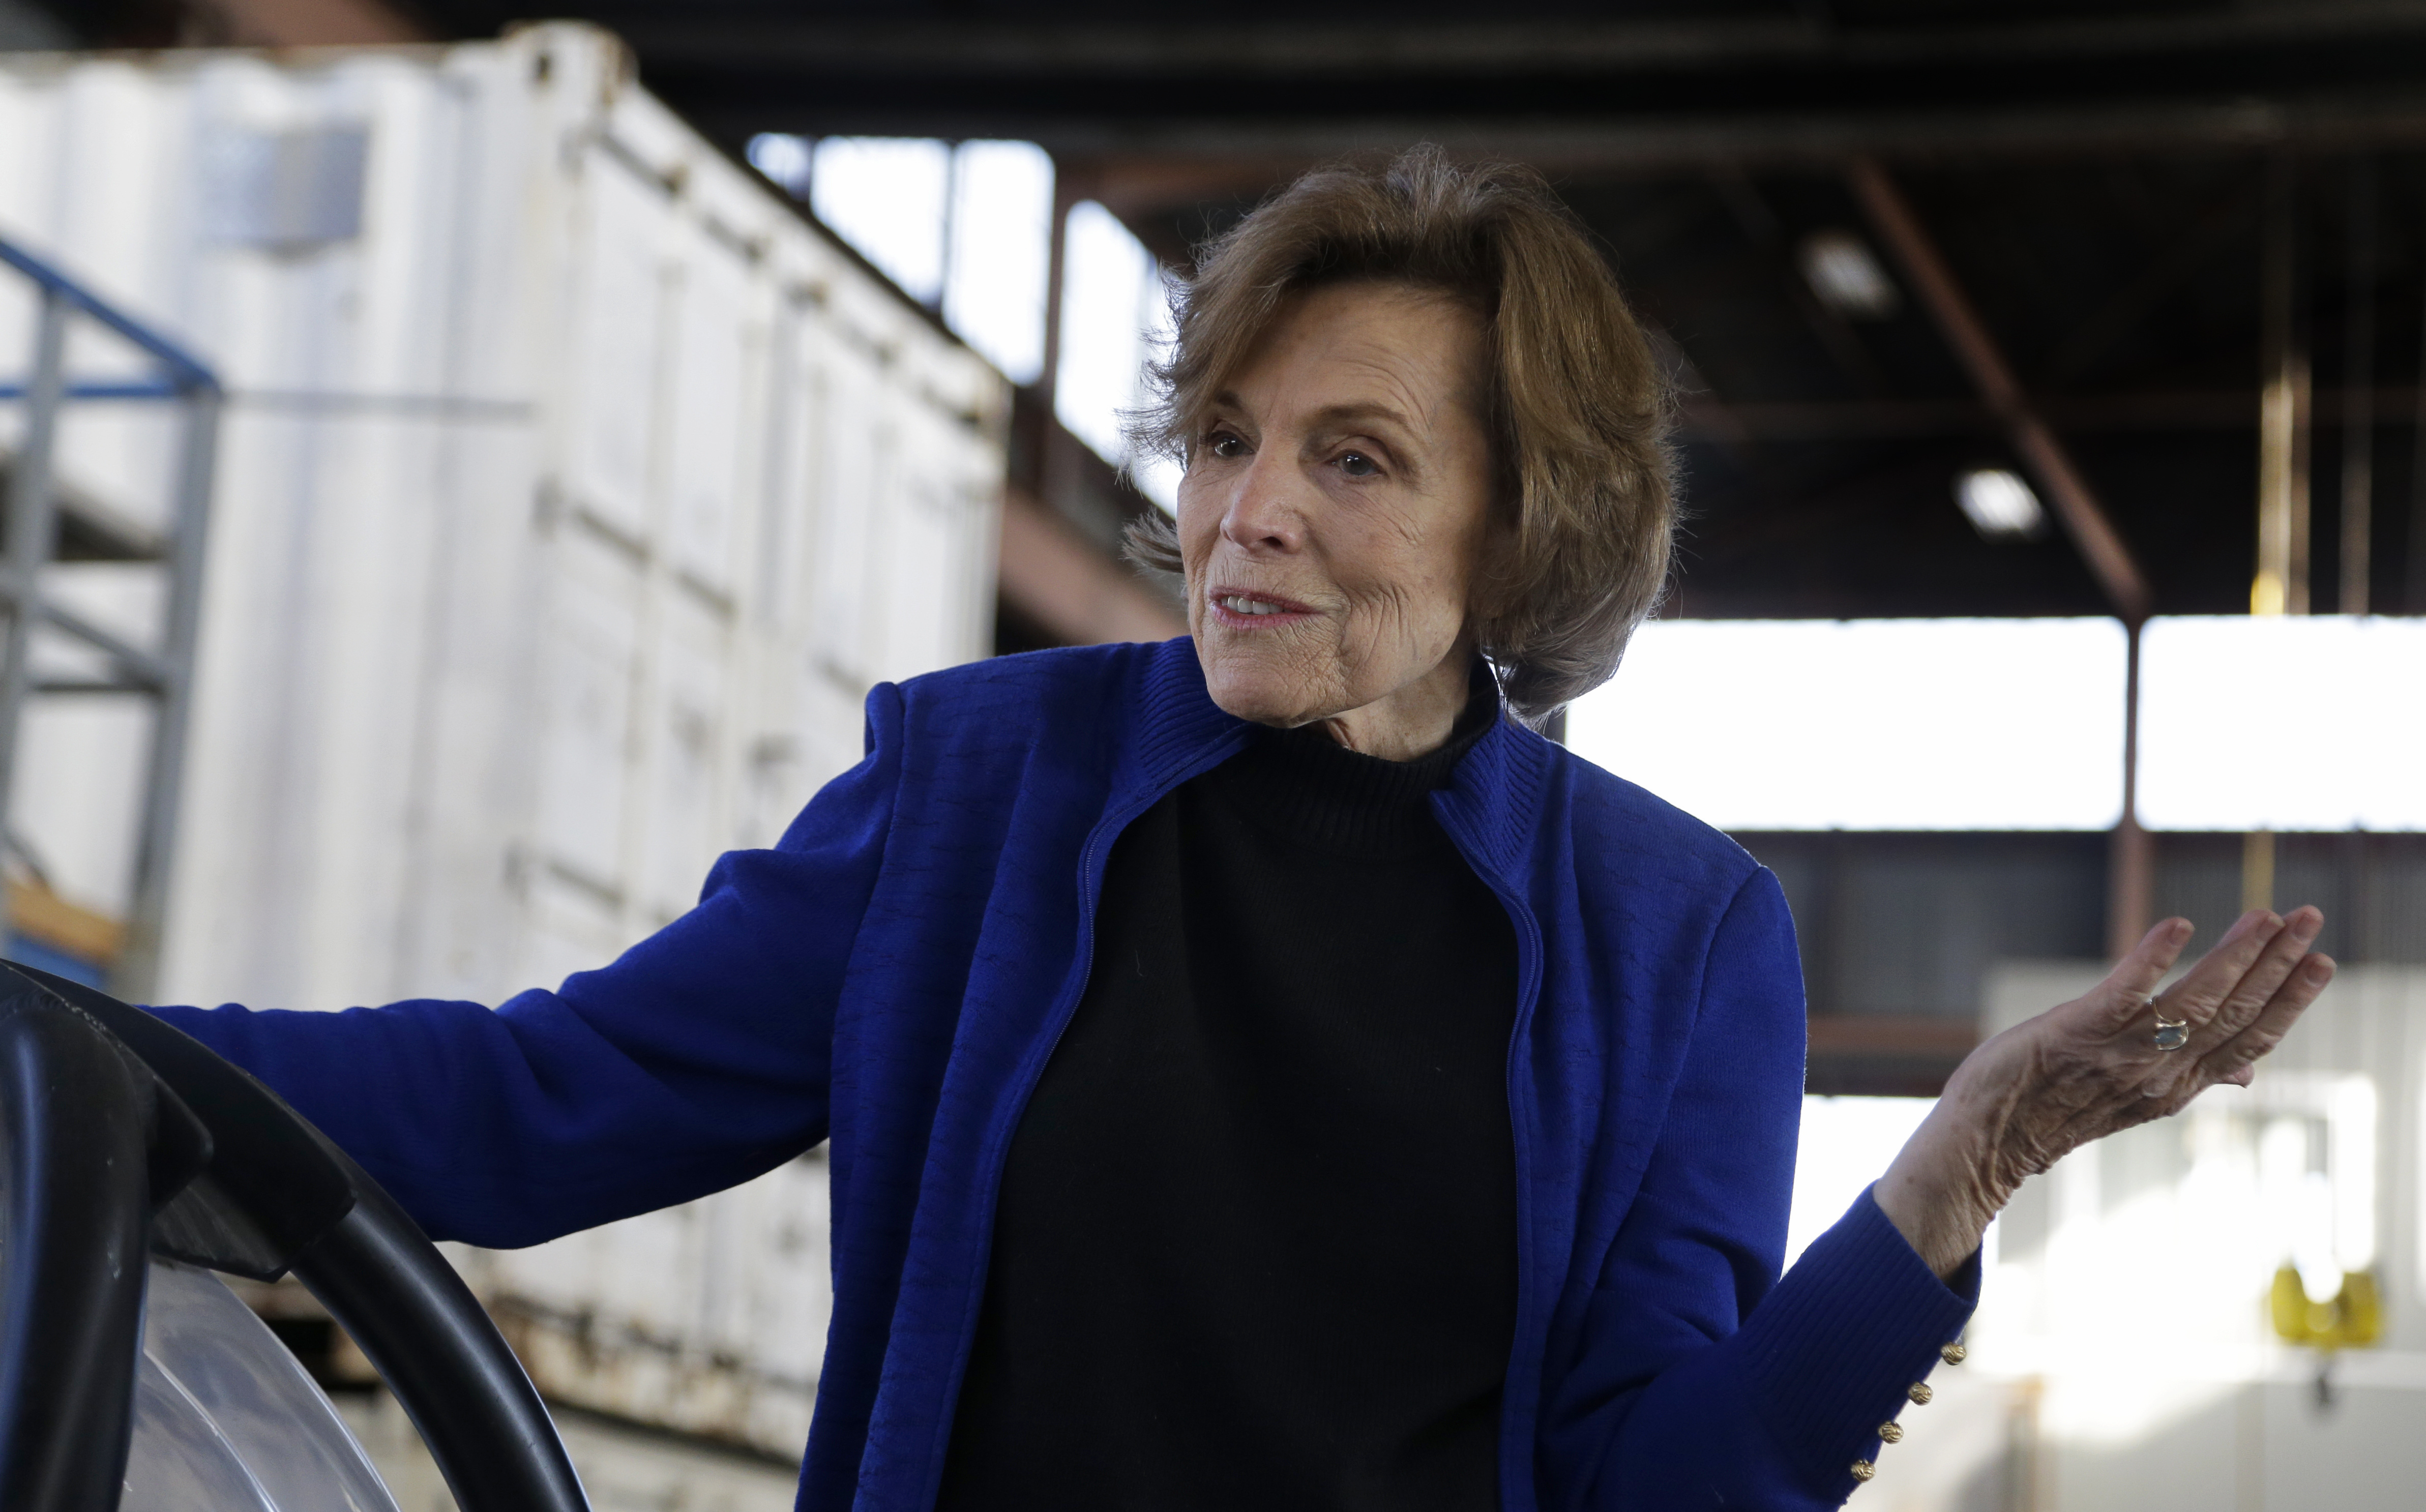 Dr. Sylvia Earle gestures while speaking at Deep Ocean Exploration and Research Marine in Alameda, CA, on Dec.19, 2016.